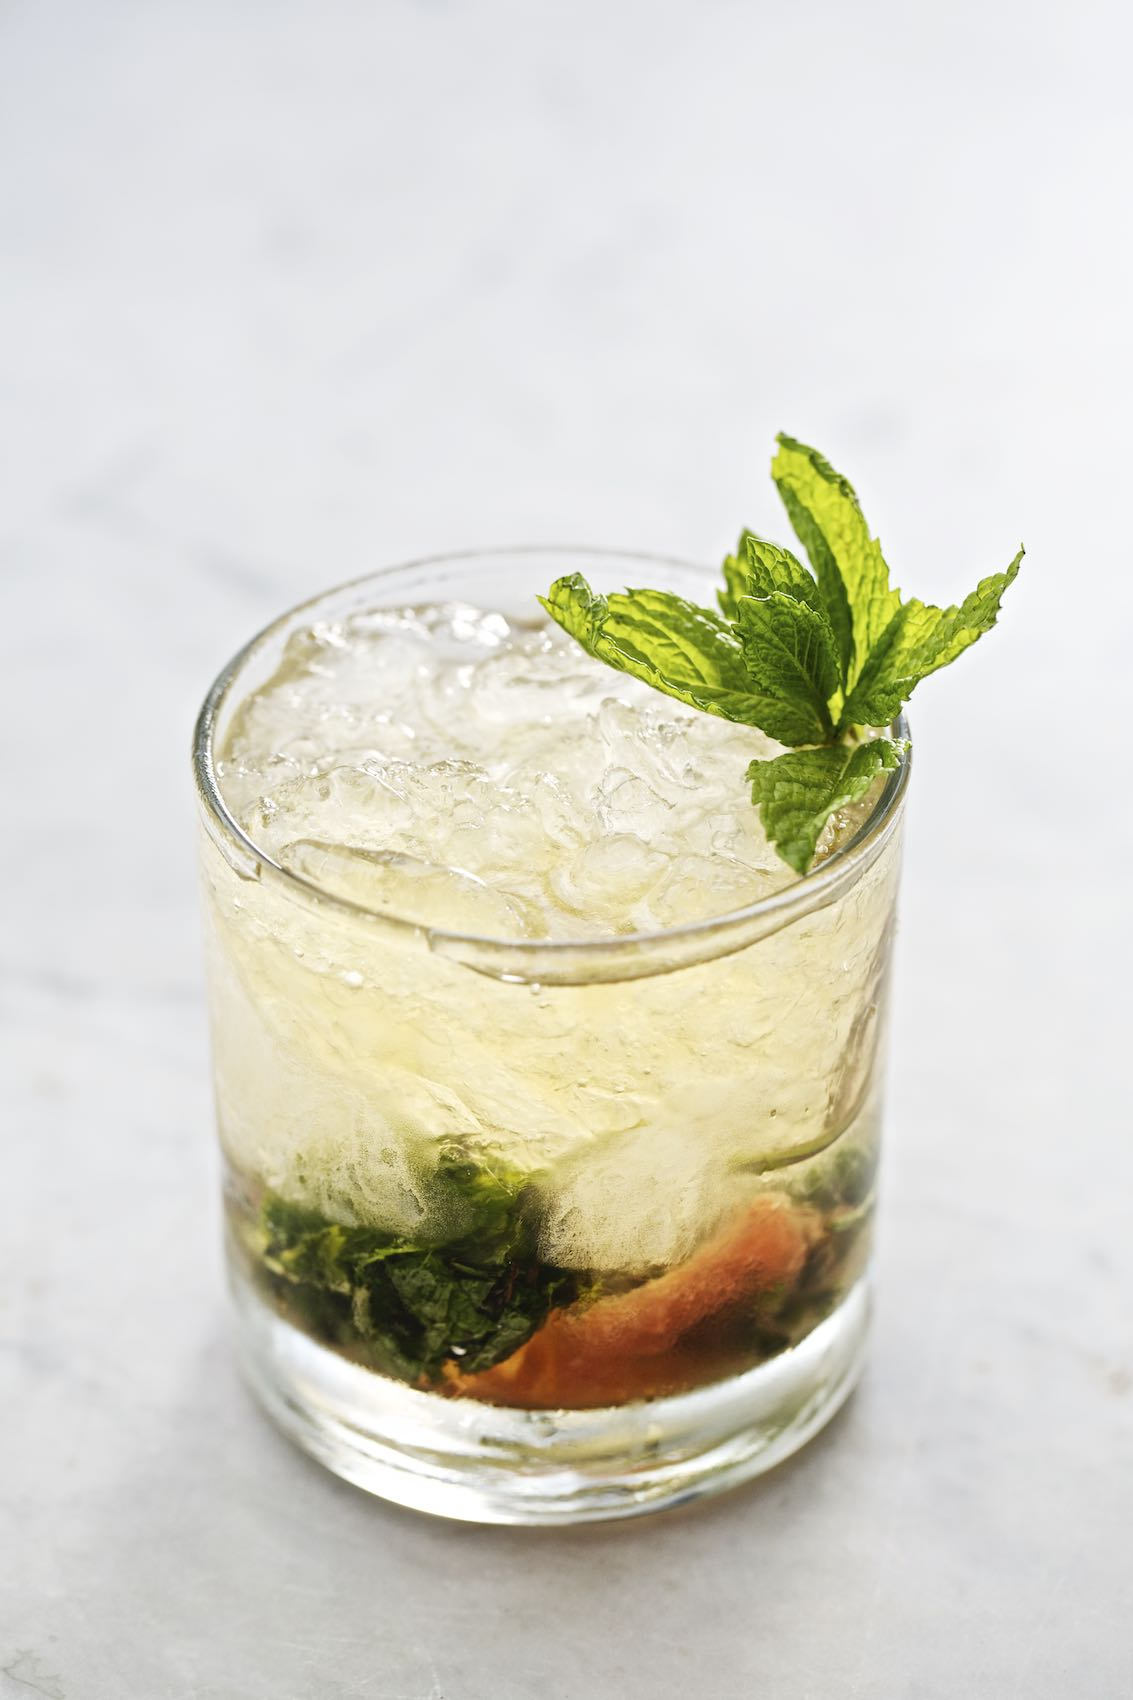 Jody Horton Photography - Iced cocktail with mint garnish on white table.